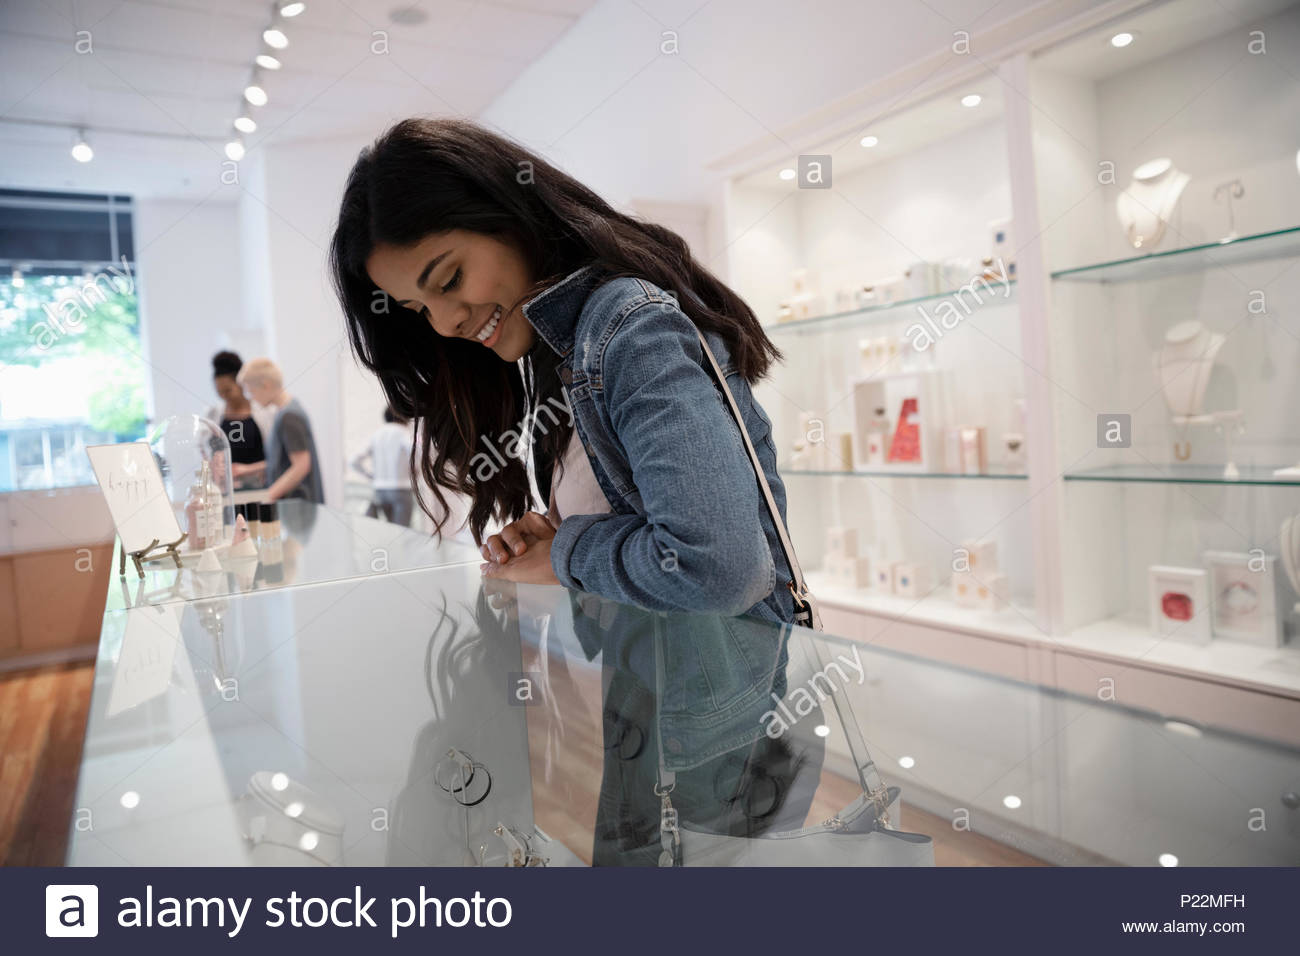 Young woman shopping for jewelry at display case in boutique - Stock Image